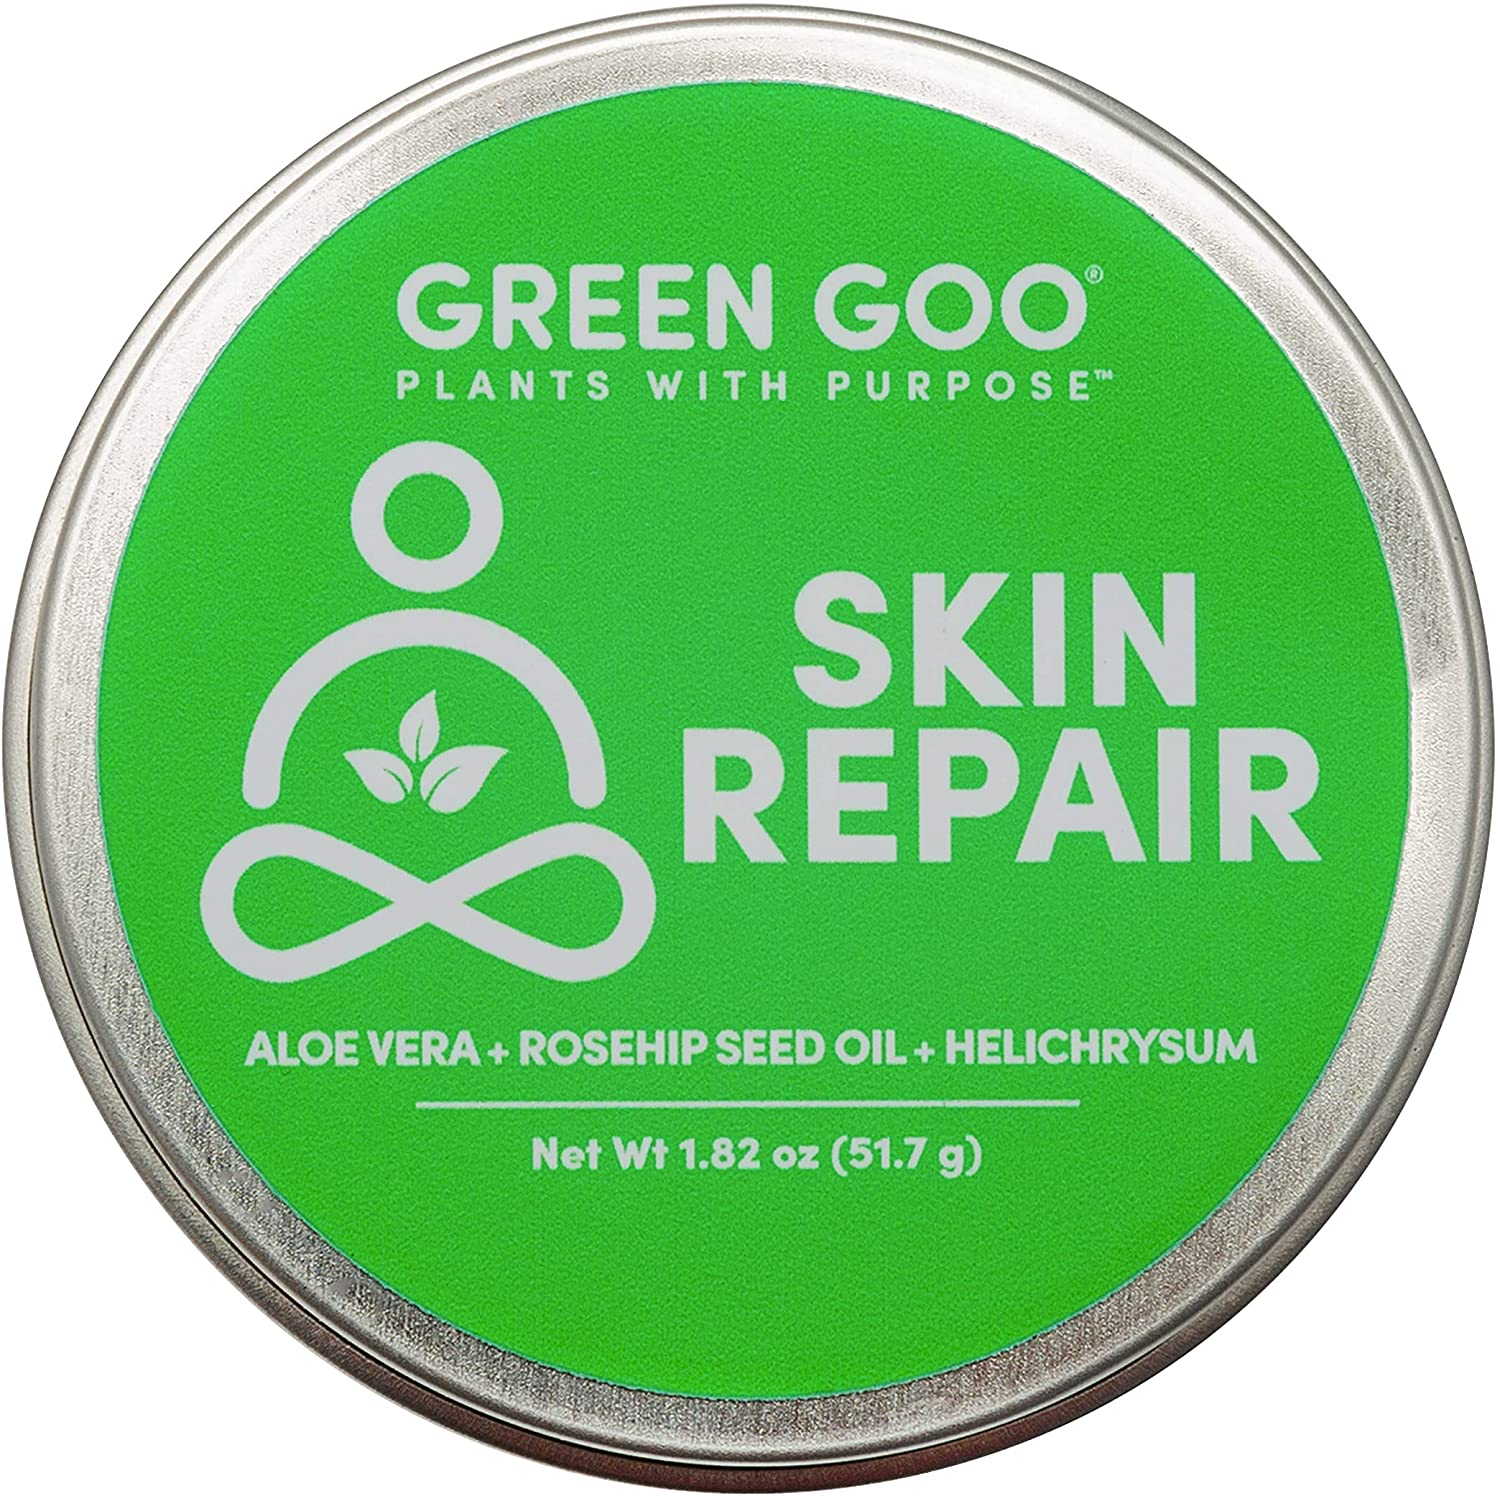 Green Goo Natural Skin Care Repair Protection Salve and Luxury Limited price sale 1